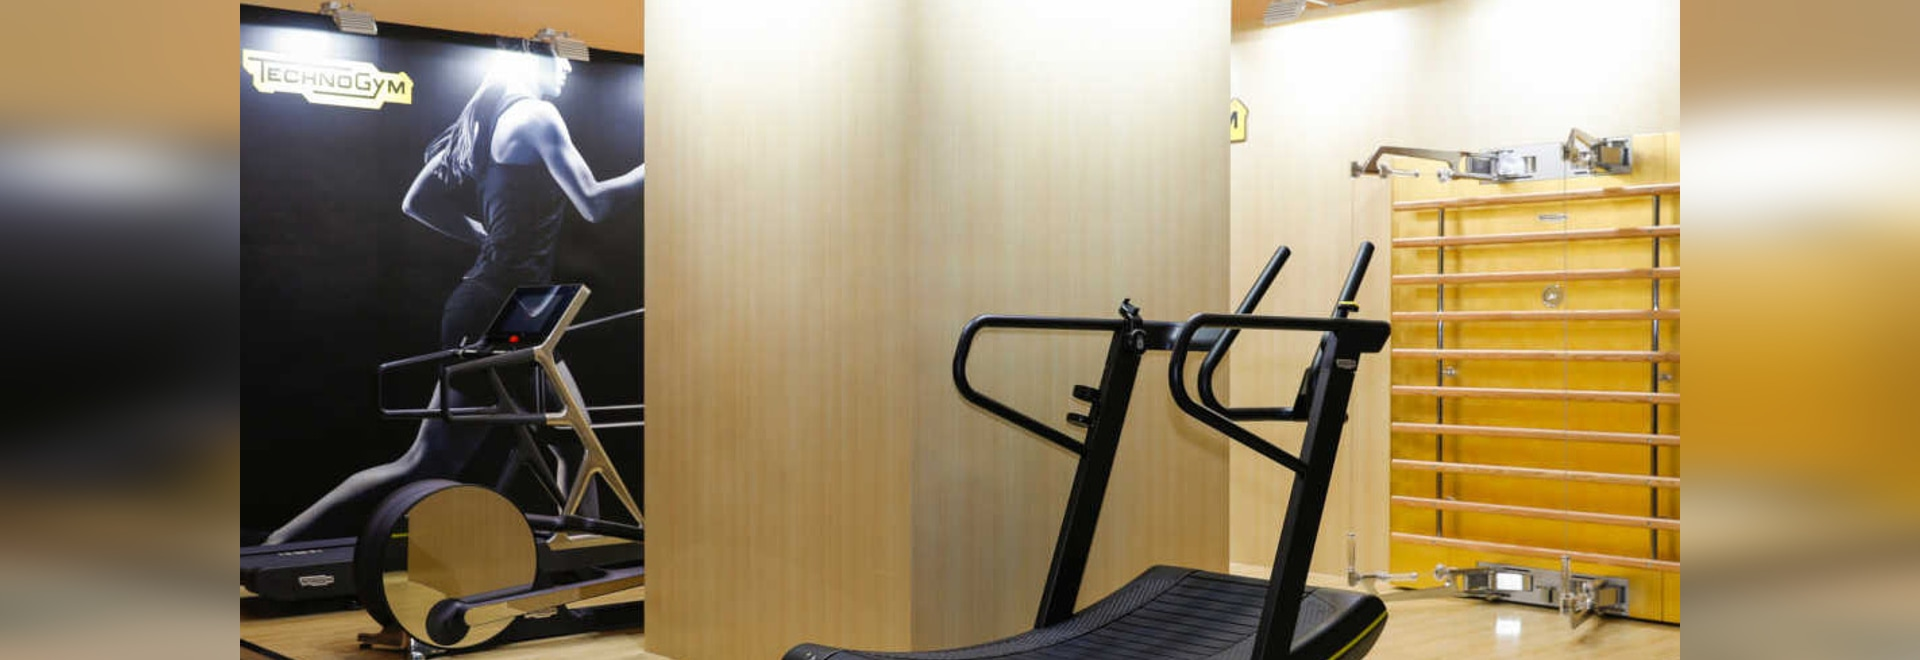 Technogym stand at Salone del Mobile Shanghai